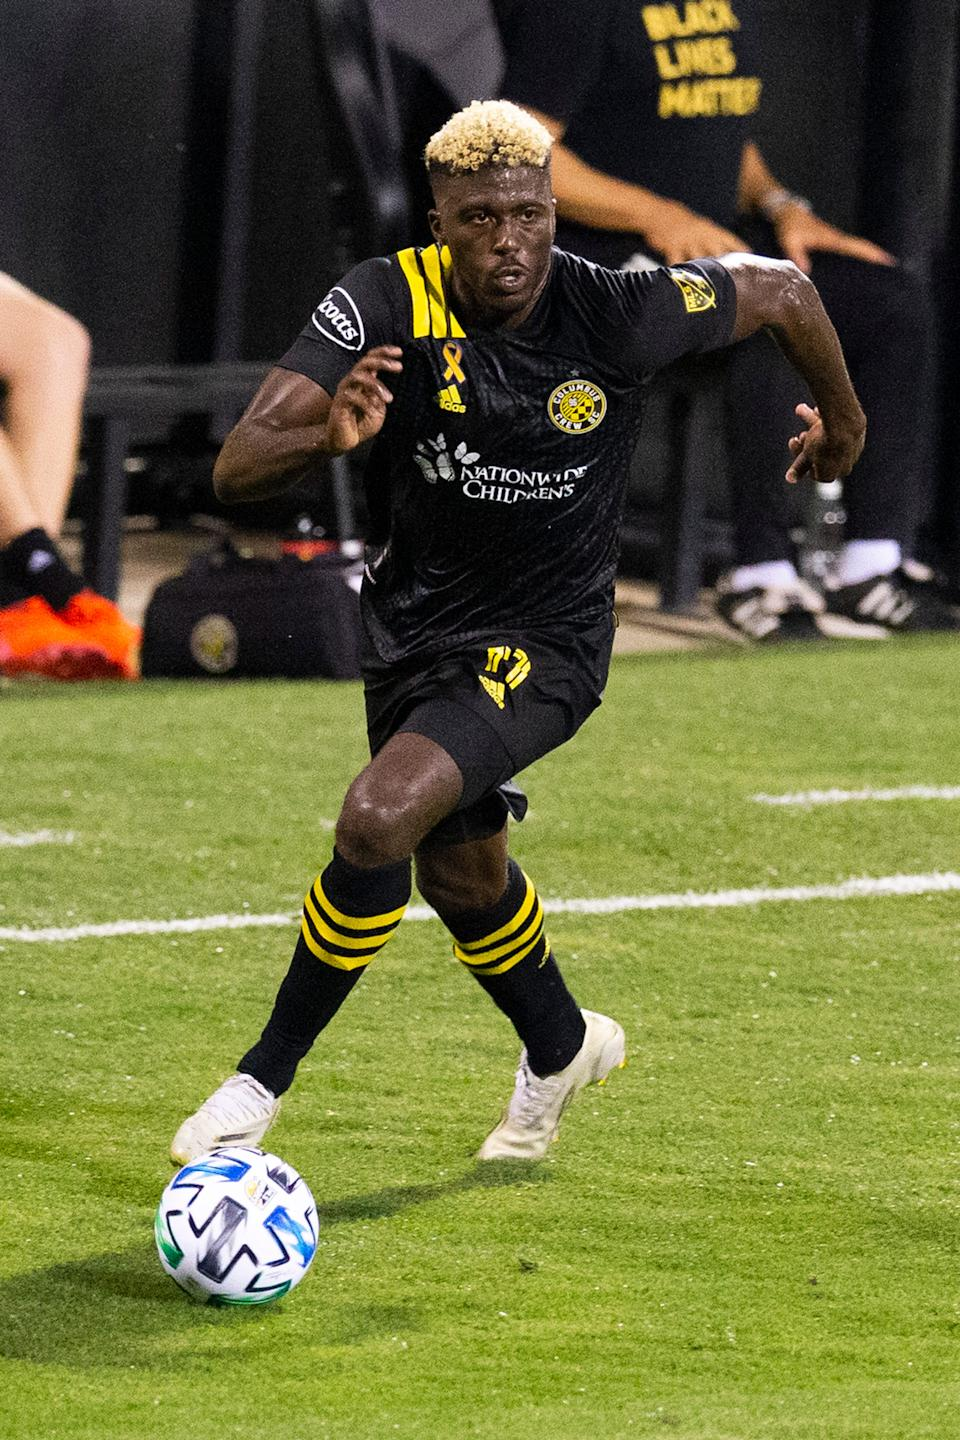 Gyasi Zardes has scored 47 combined regular-season and playoff goals for the Columbus Crew.